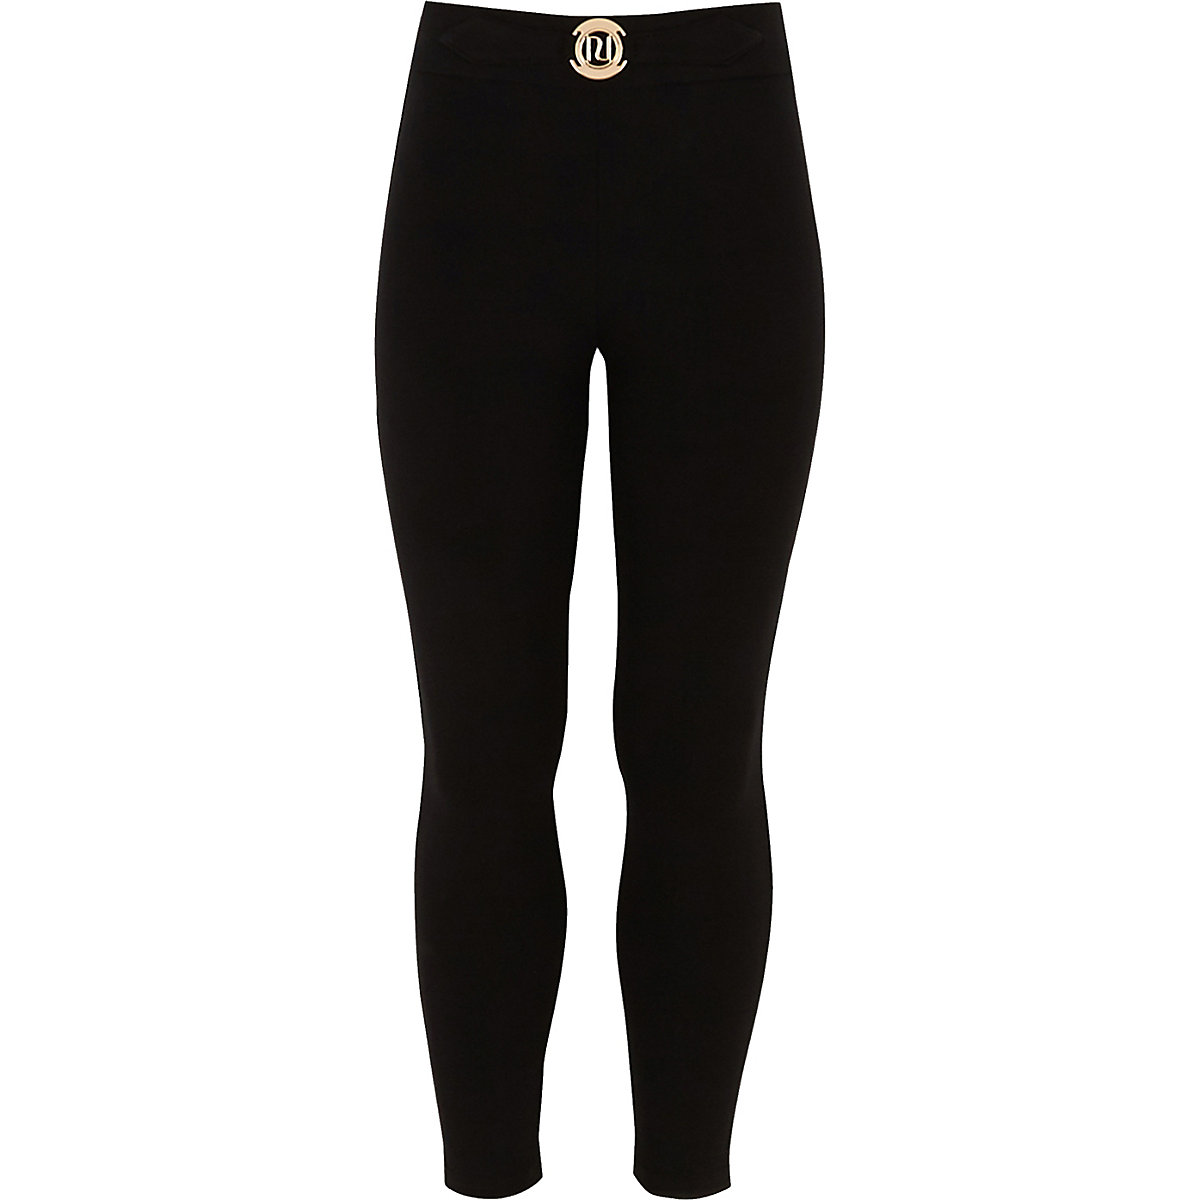 Girls black RI ponte leggings